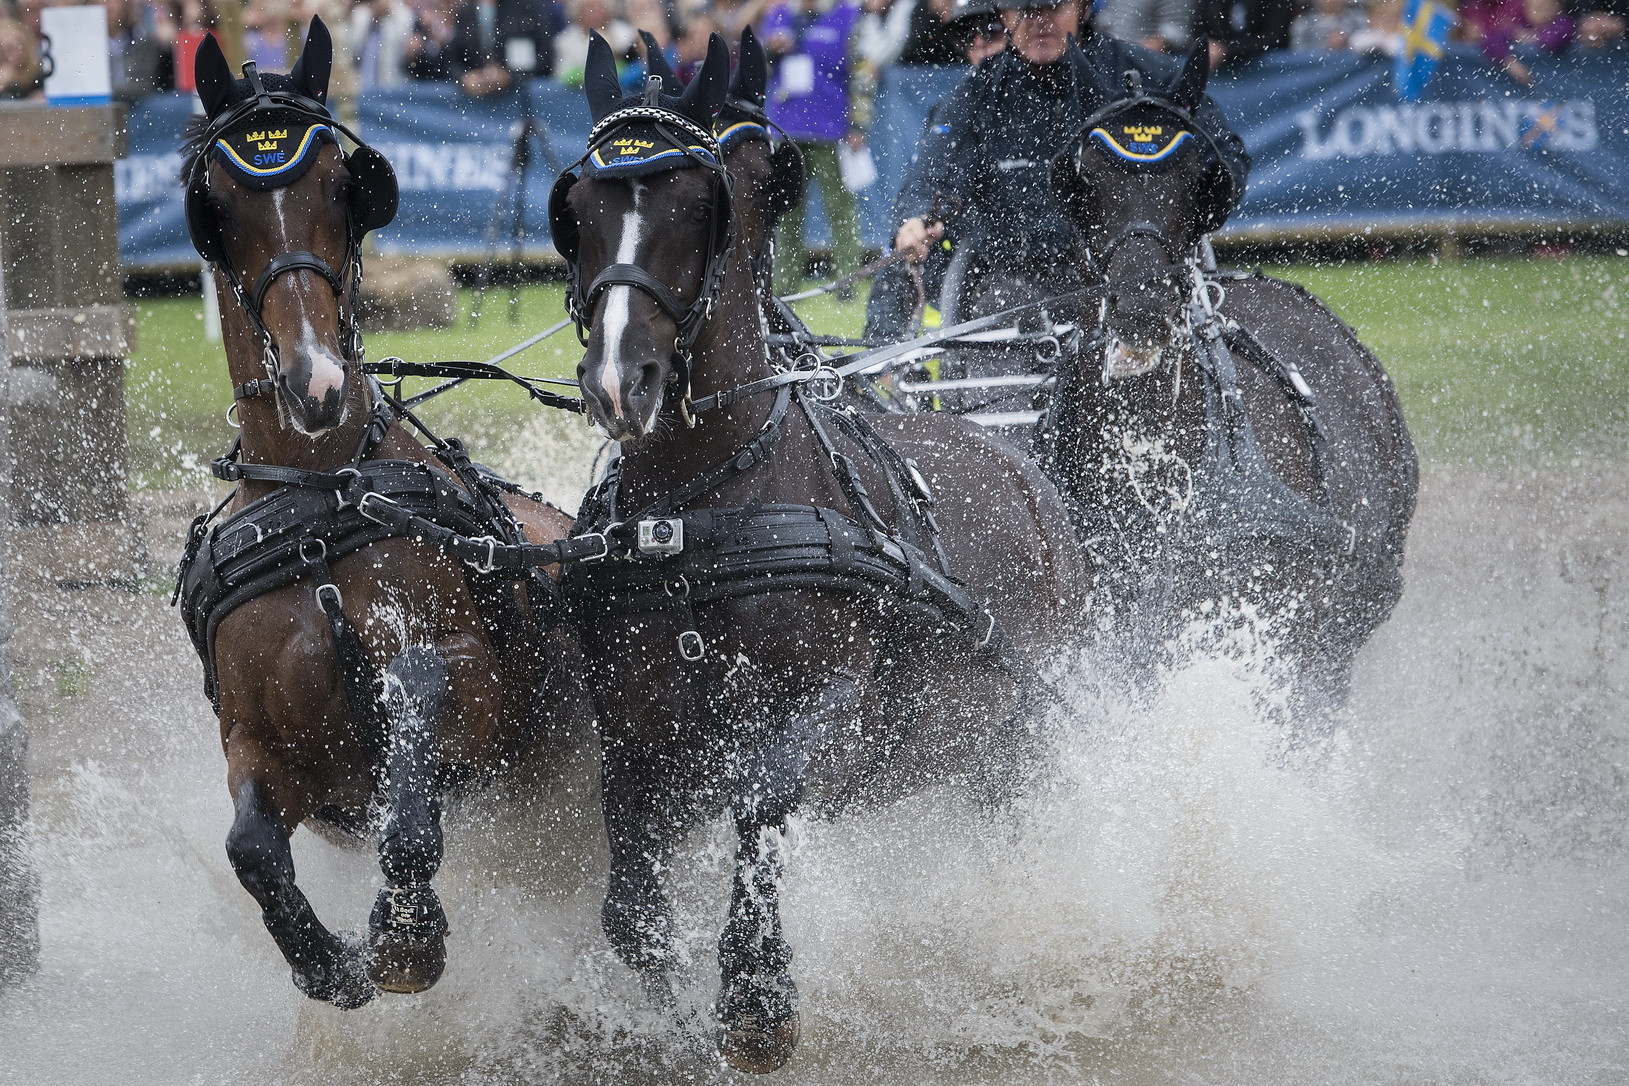 Venues have been announced for 14 events on the equestrian driving calendar up to 2021 ©FEI